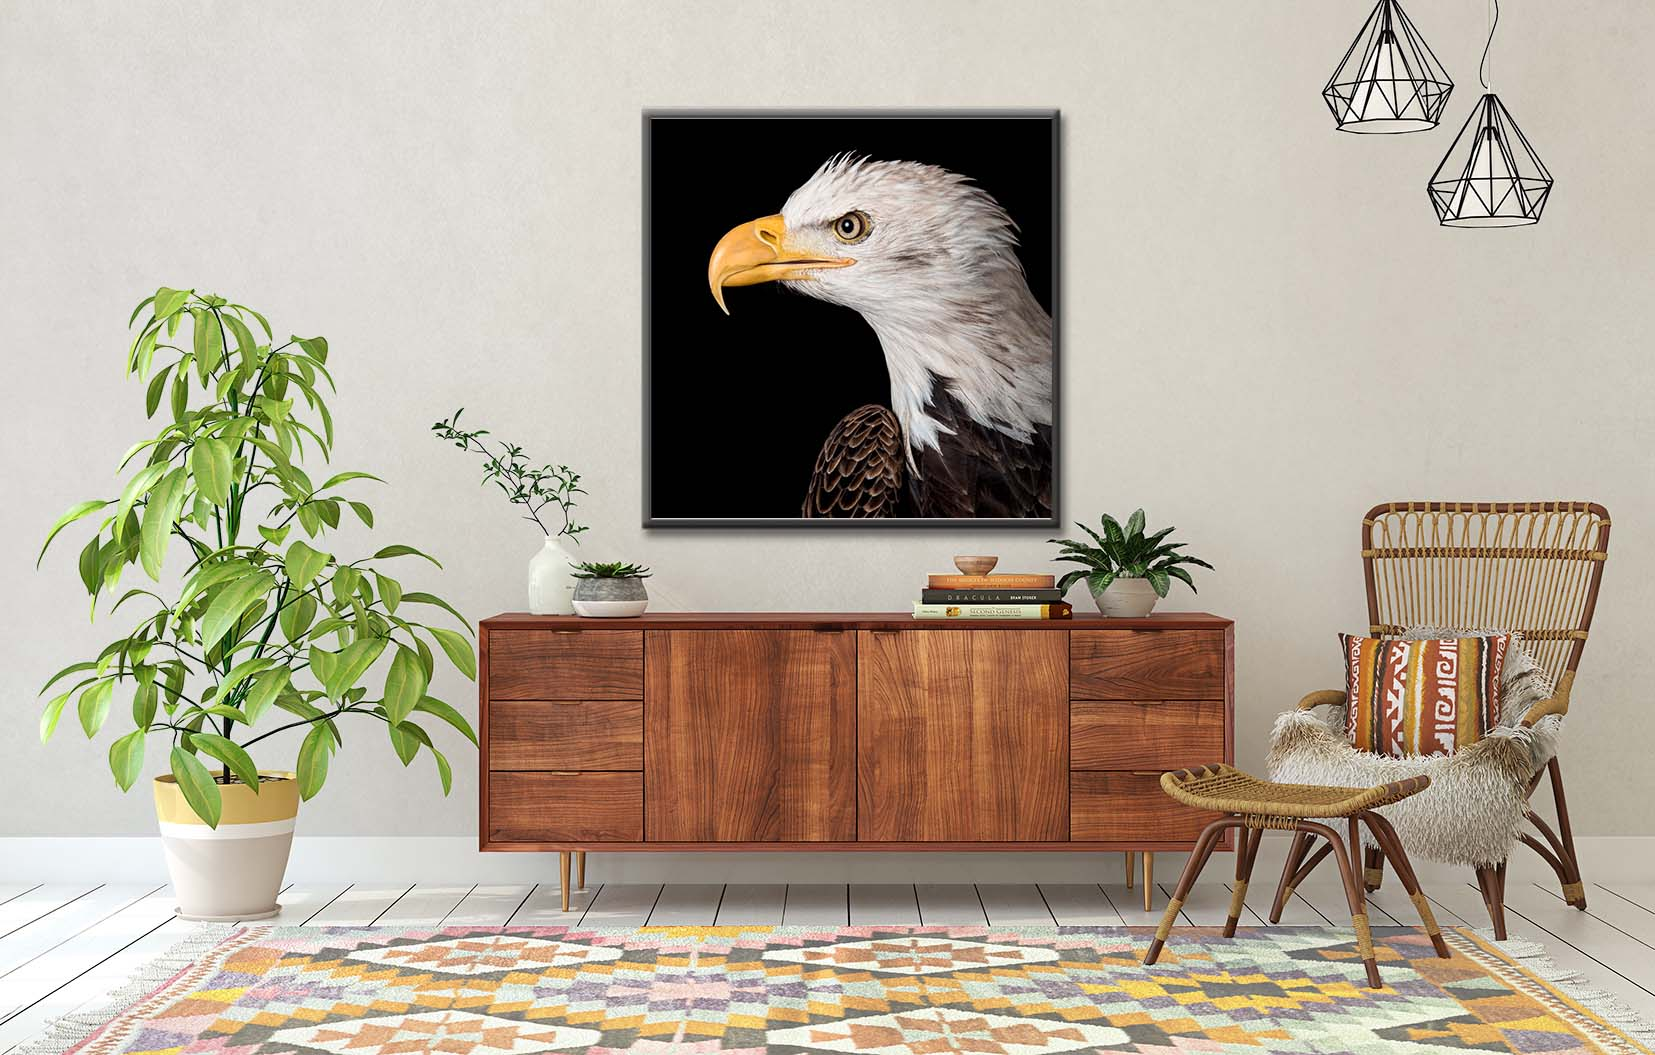 Colour photograph of a bald eagle in profile, framed and hanging on the wall. Limited edition fine art prints by award-winning photographer Paul Coghlin FBIPP.